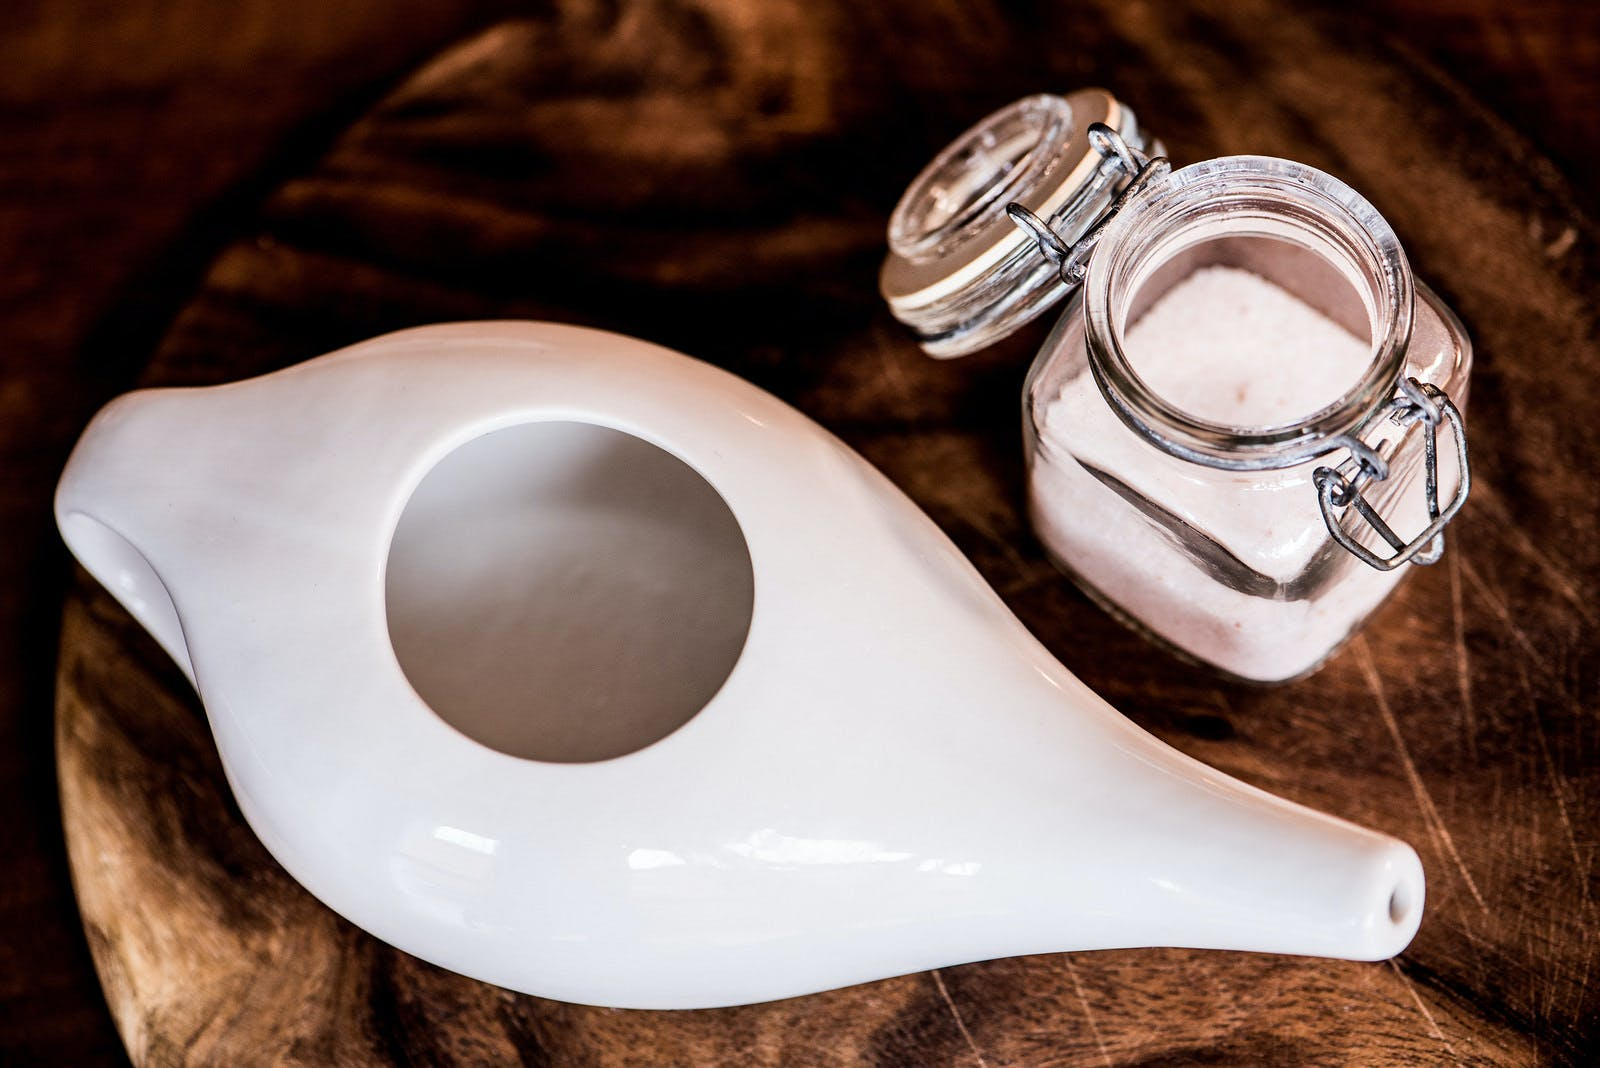 Neti pot with sterile water and salt for rinsing sinuses